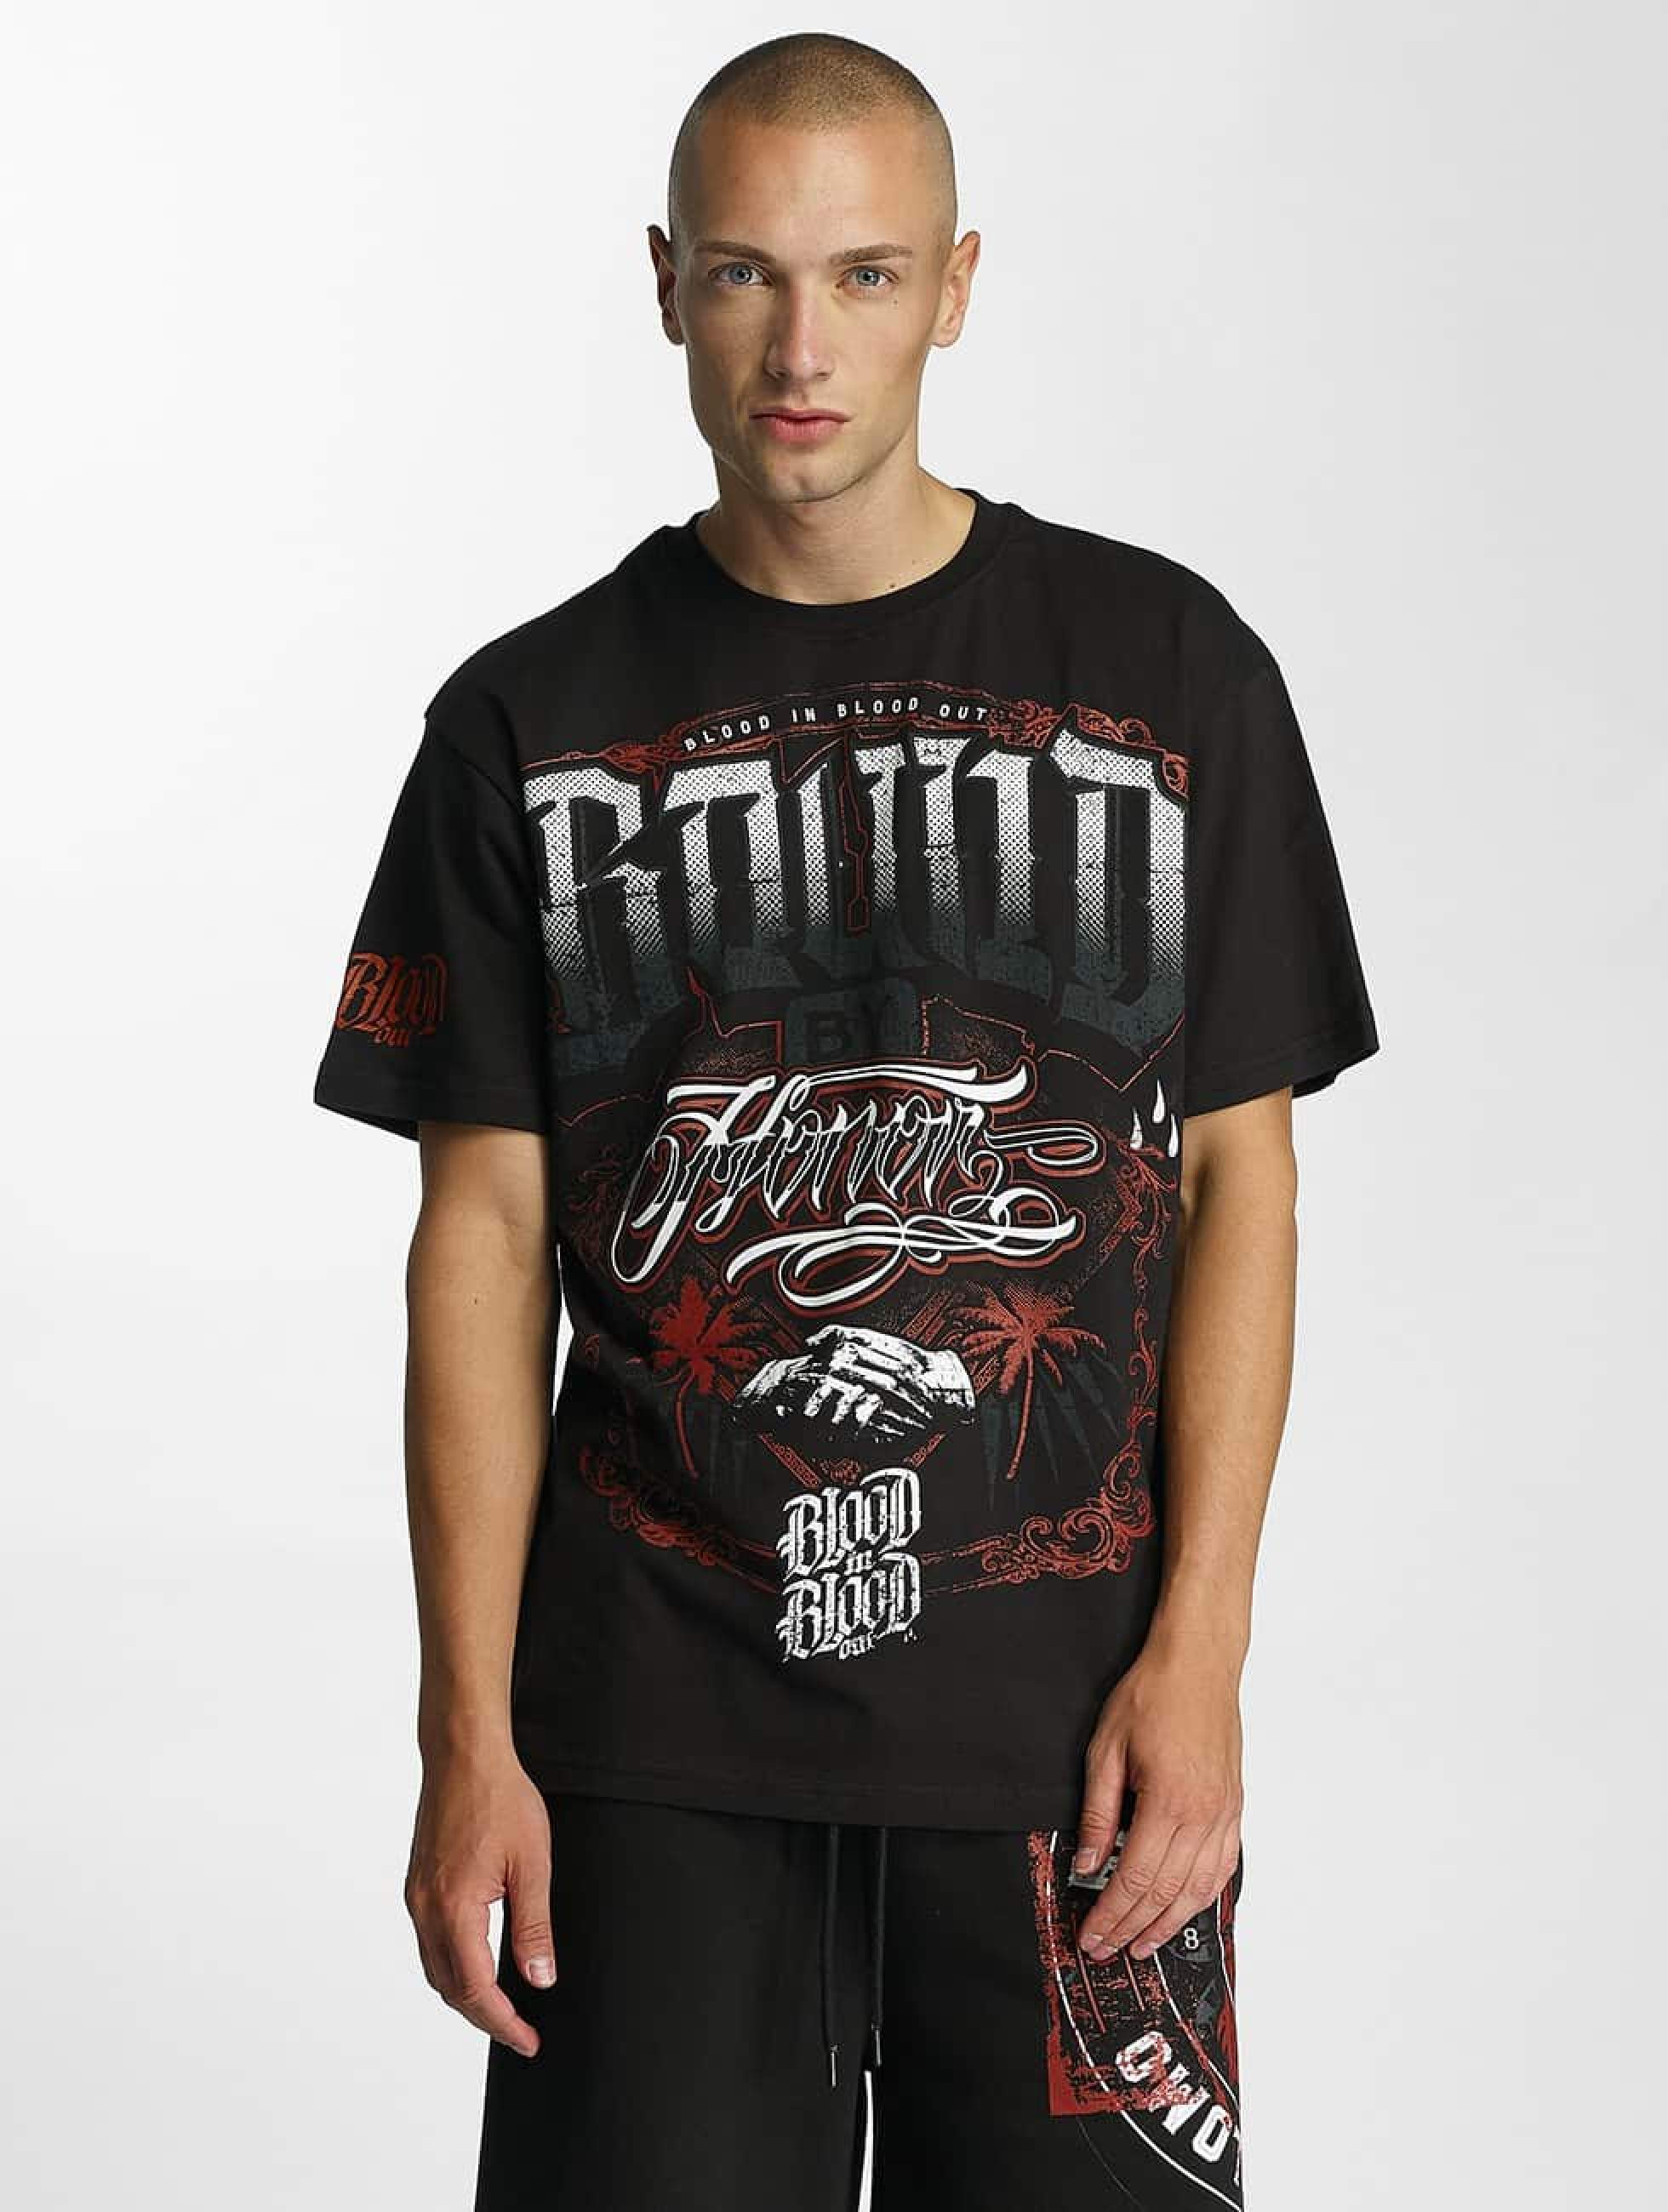 Blood In Blood Out | Bound  noir Homme T-Shirt